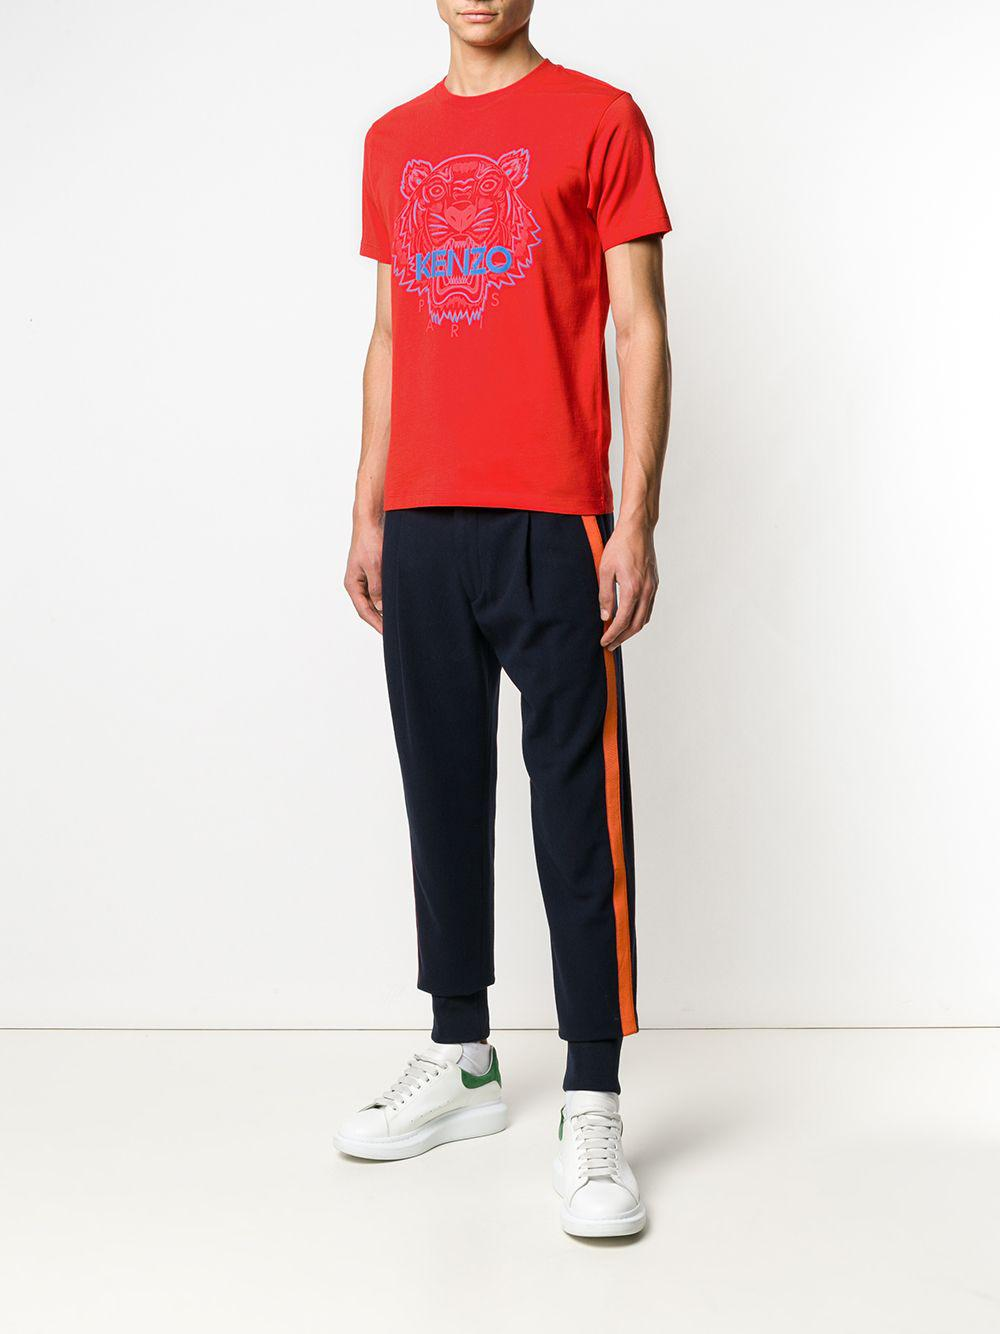 9174bafc8b5d KENZO Tiger T-shirt in Red for Men - Lyst